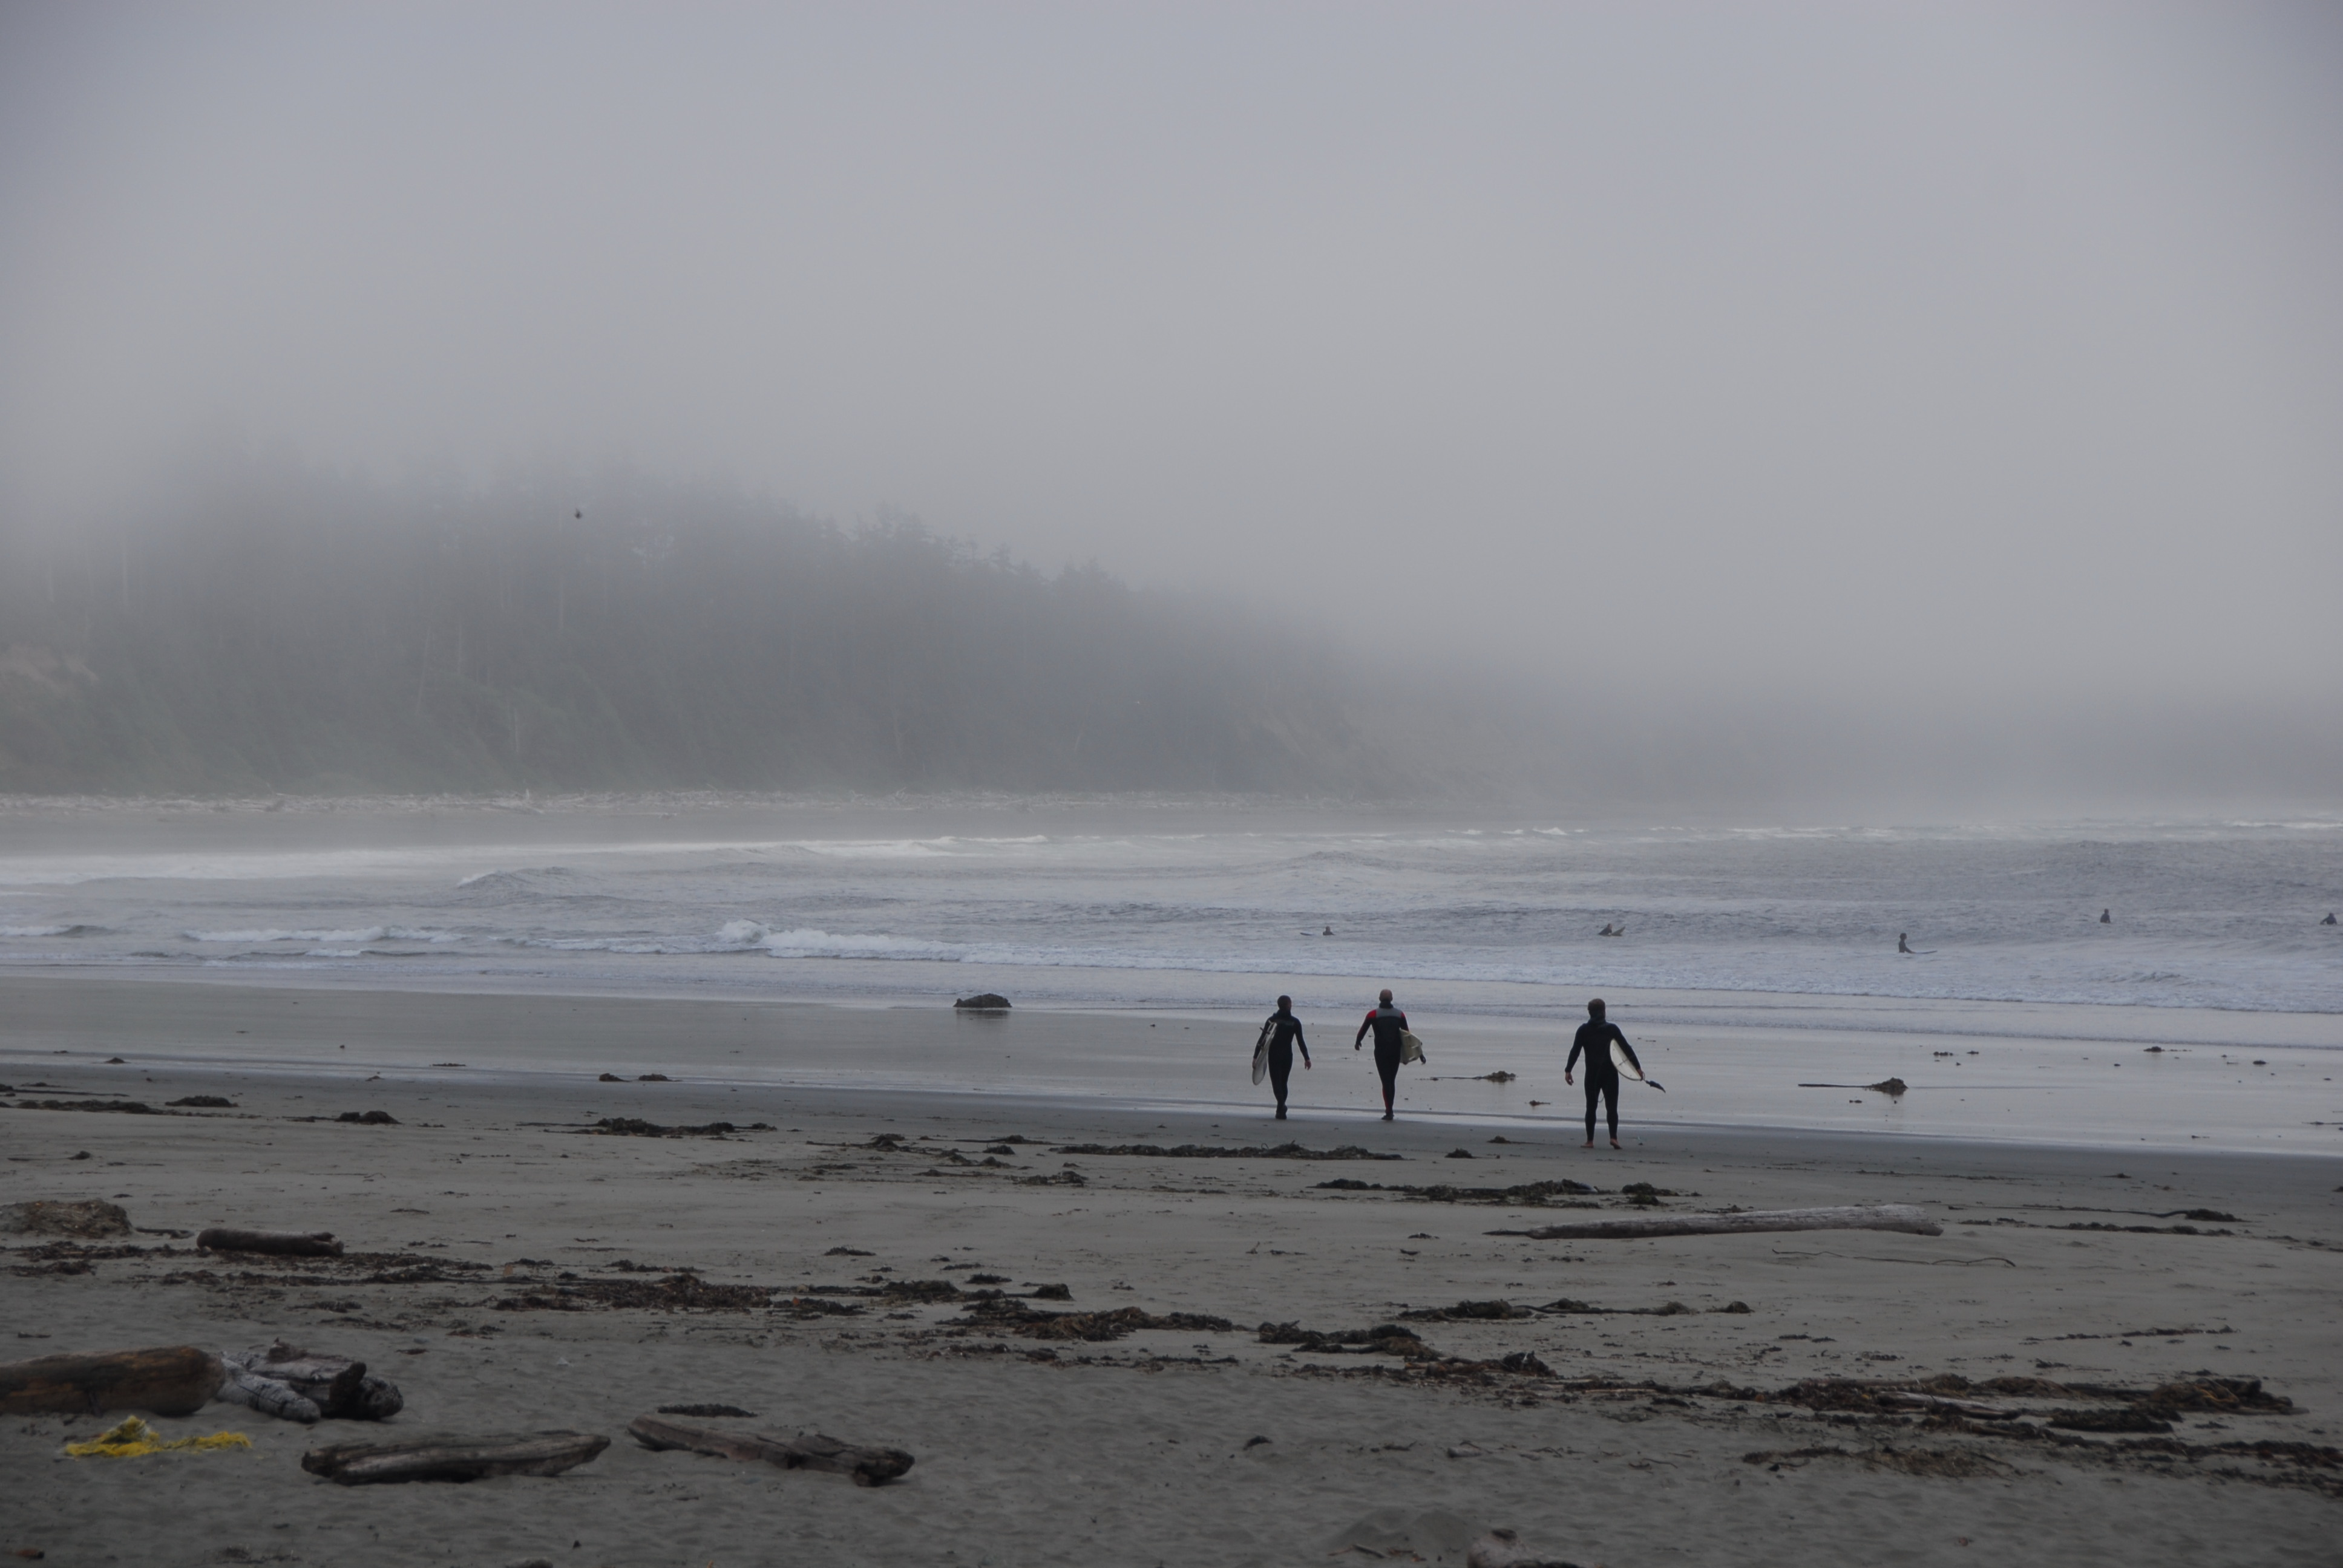 File Sufers And Fog At Long Beach Bc 2